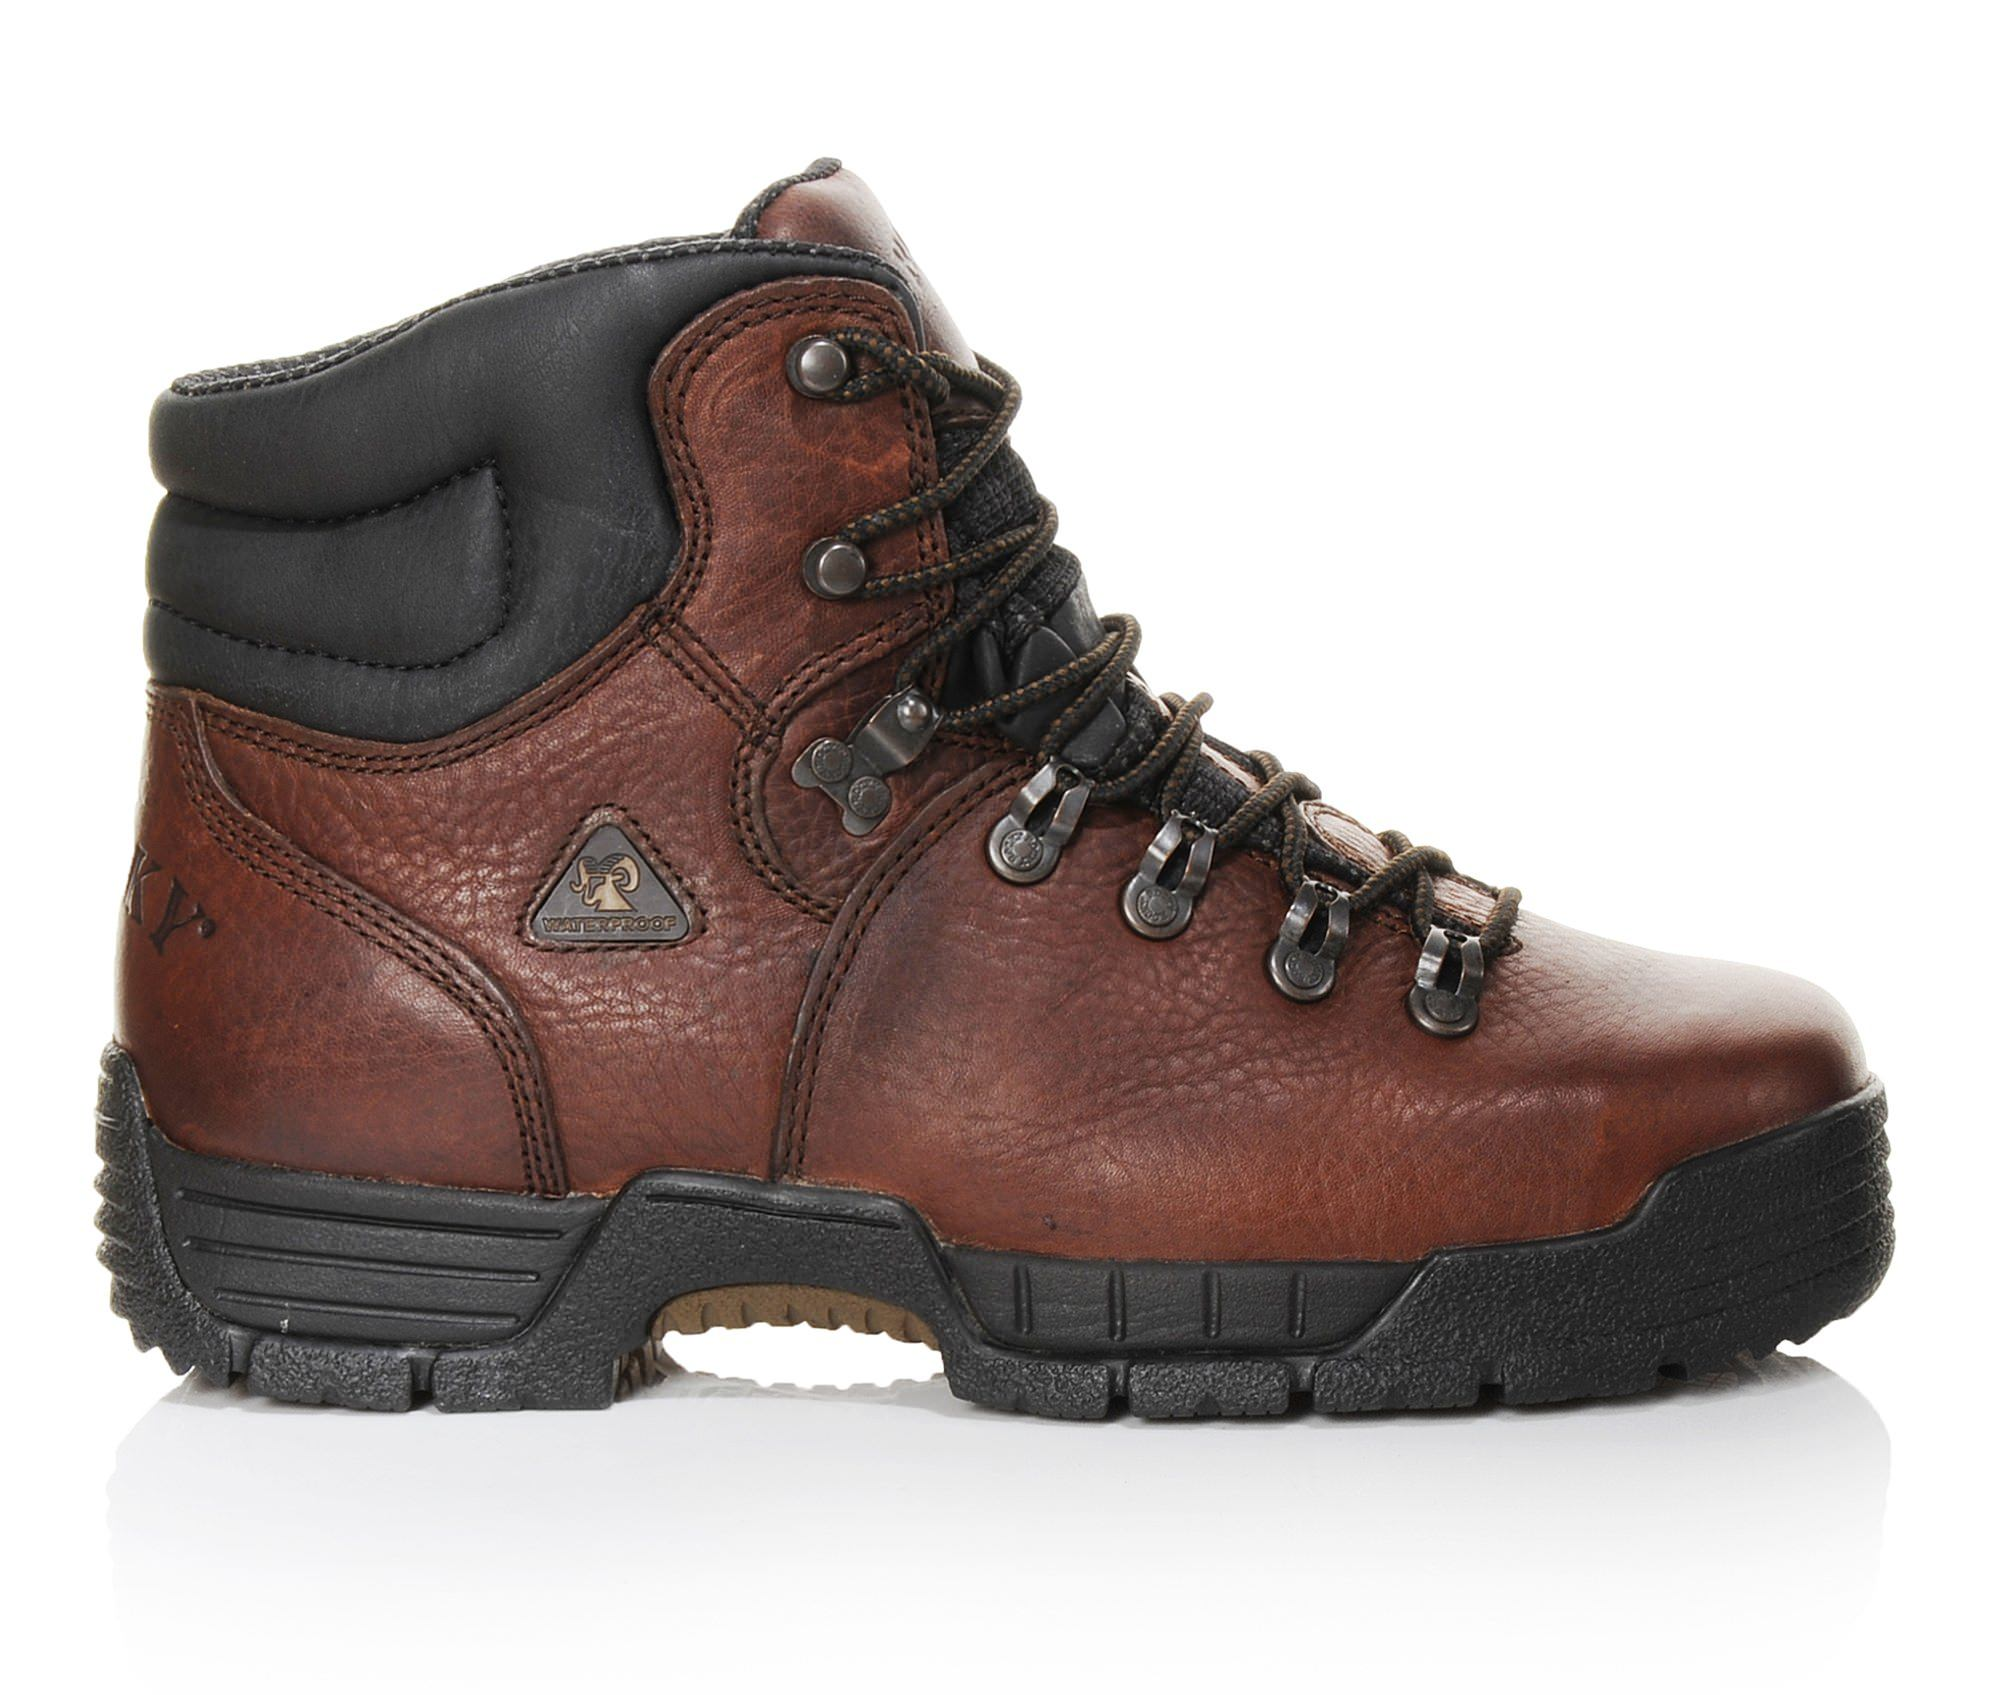 Rocky Mobilite 6 In Steel Toe 6114 Men's Boots (Brown Leather)